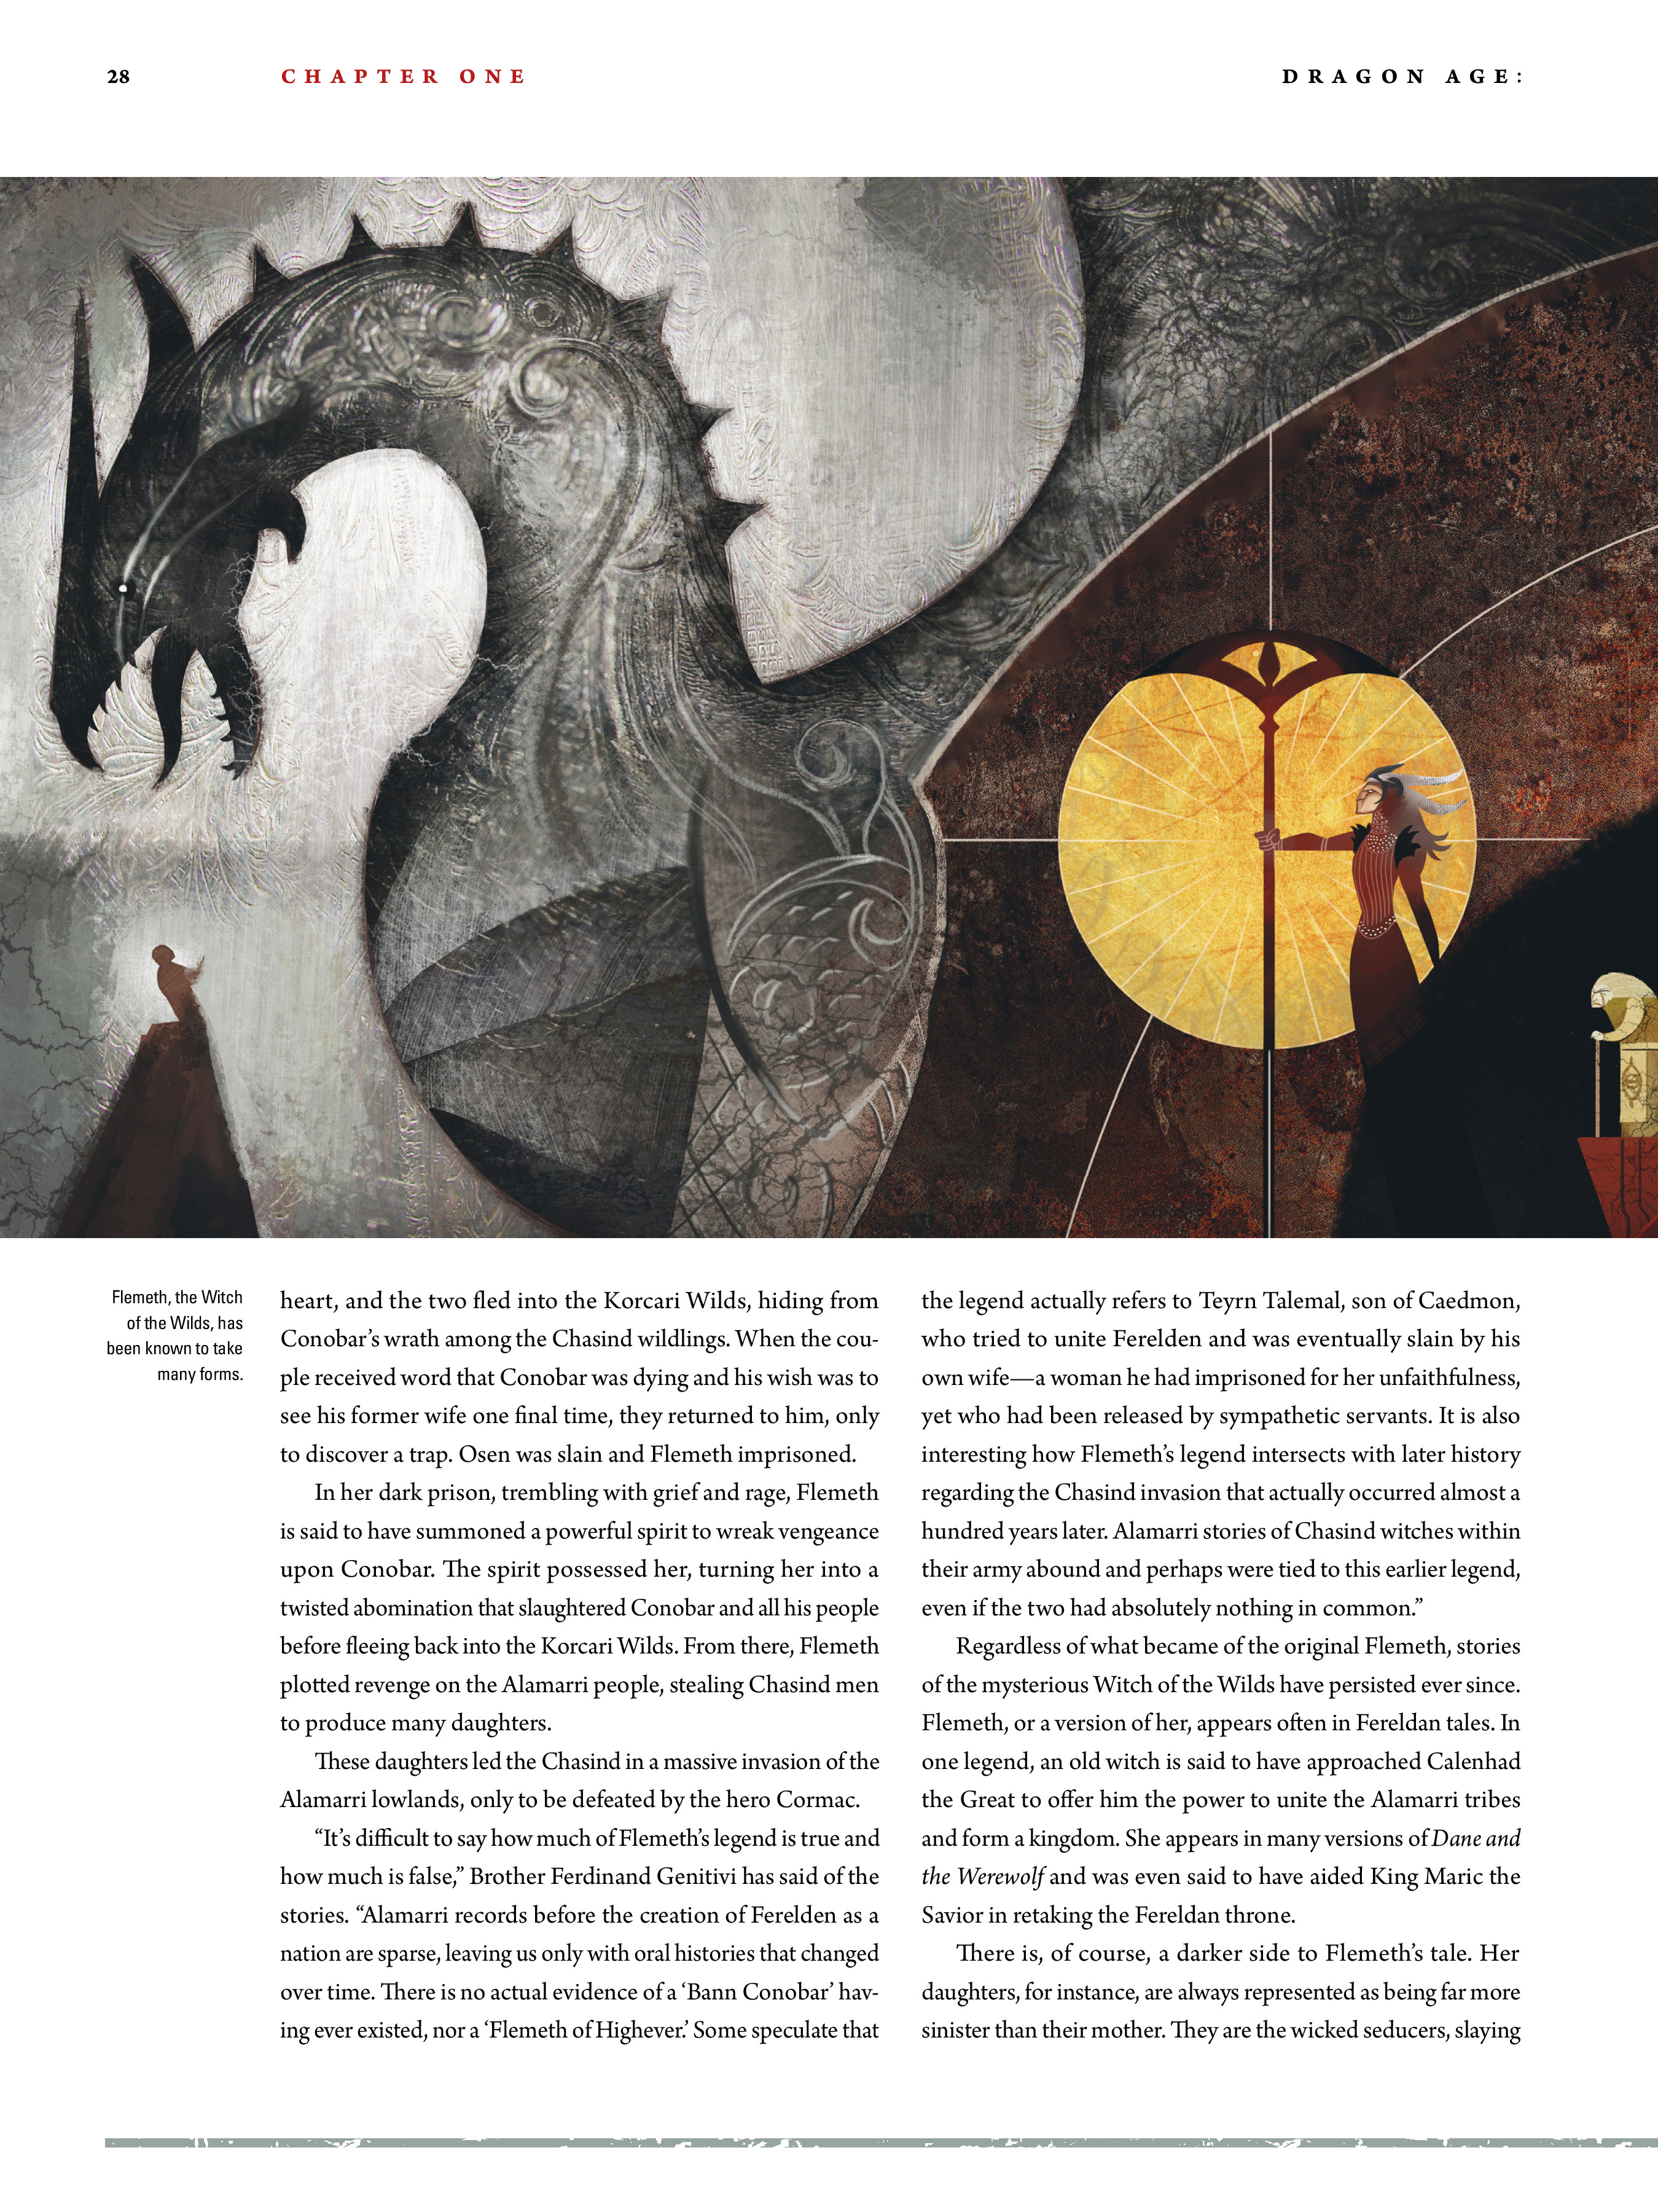 Read online Dragon Age: The World of Thedas comic -  Issue # TPB 2 - 25